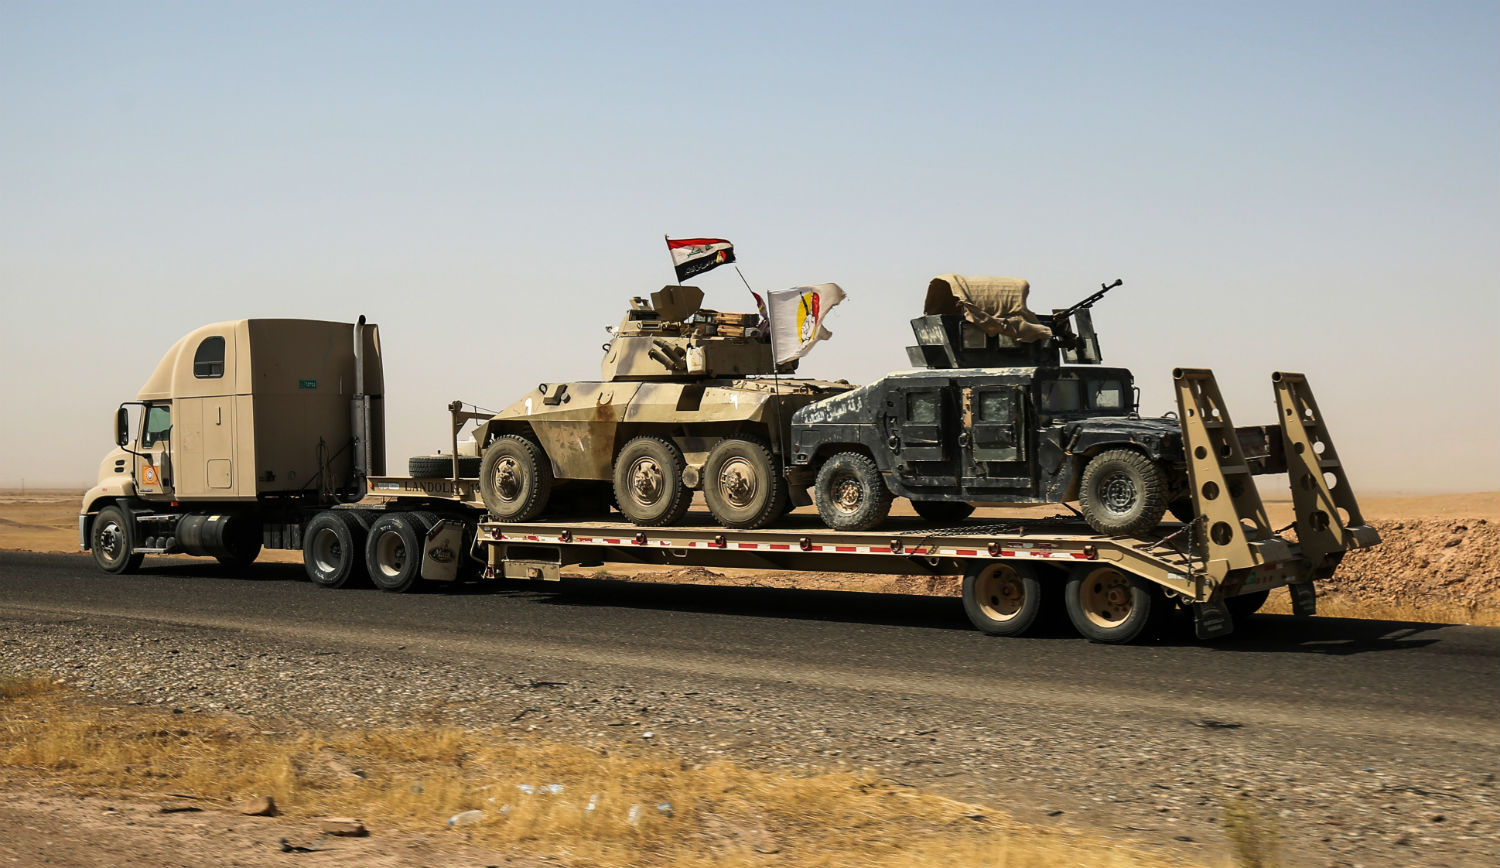 A truck tows armored combat vehicles belonging to an Iraqi anti-Islamic State paramilitary group on August 31, 2017. AHMAD AL-RUBAYE/AFP/Getty Images.